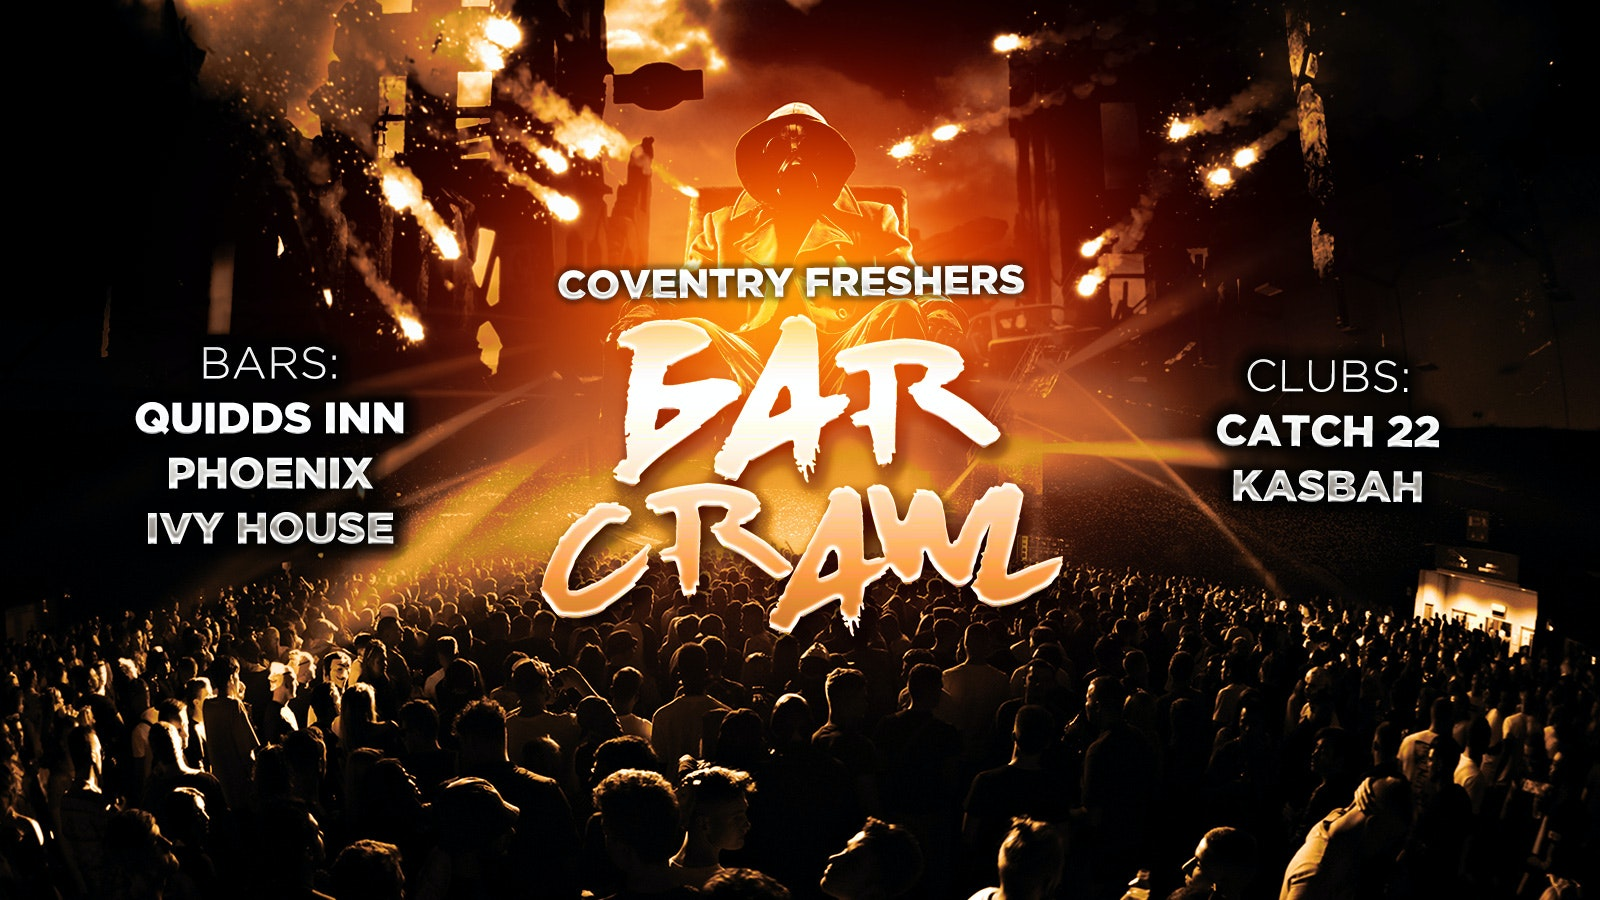 Coventry Freshers Bar Crawl / Coventry Freshers 2019